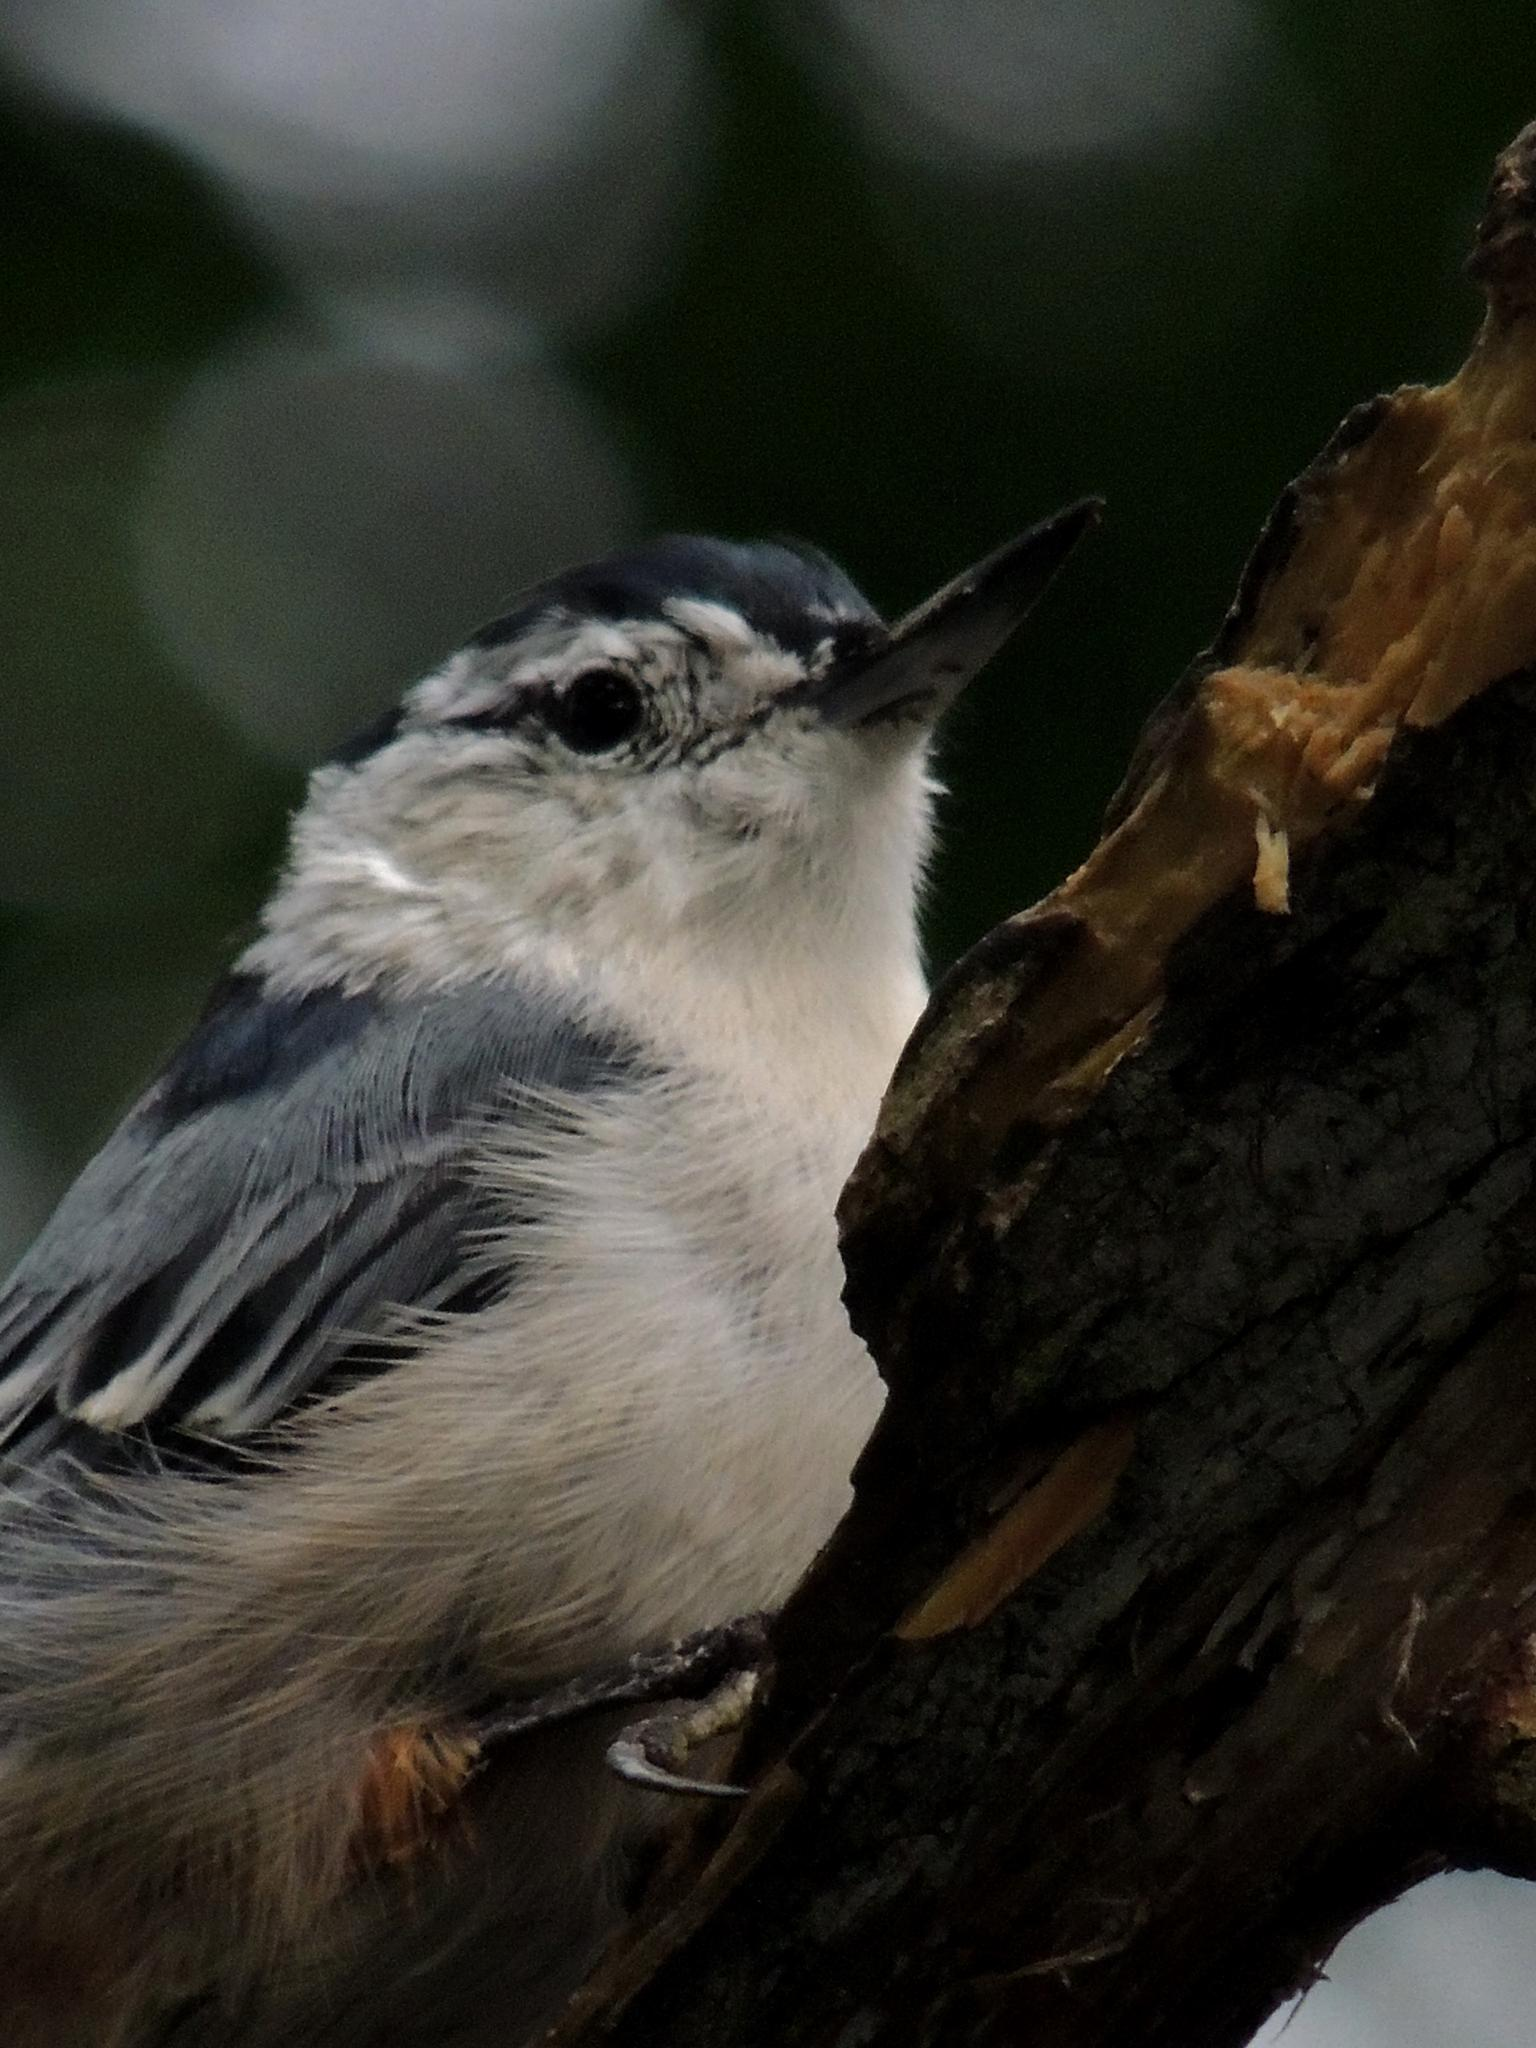 Nuthatch by carol.capozzi.18